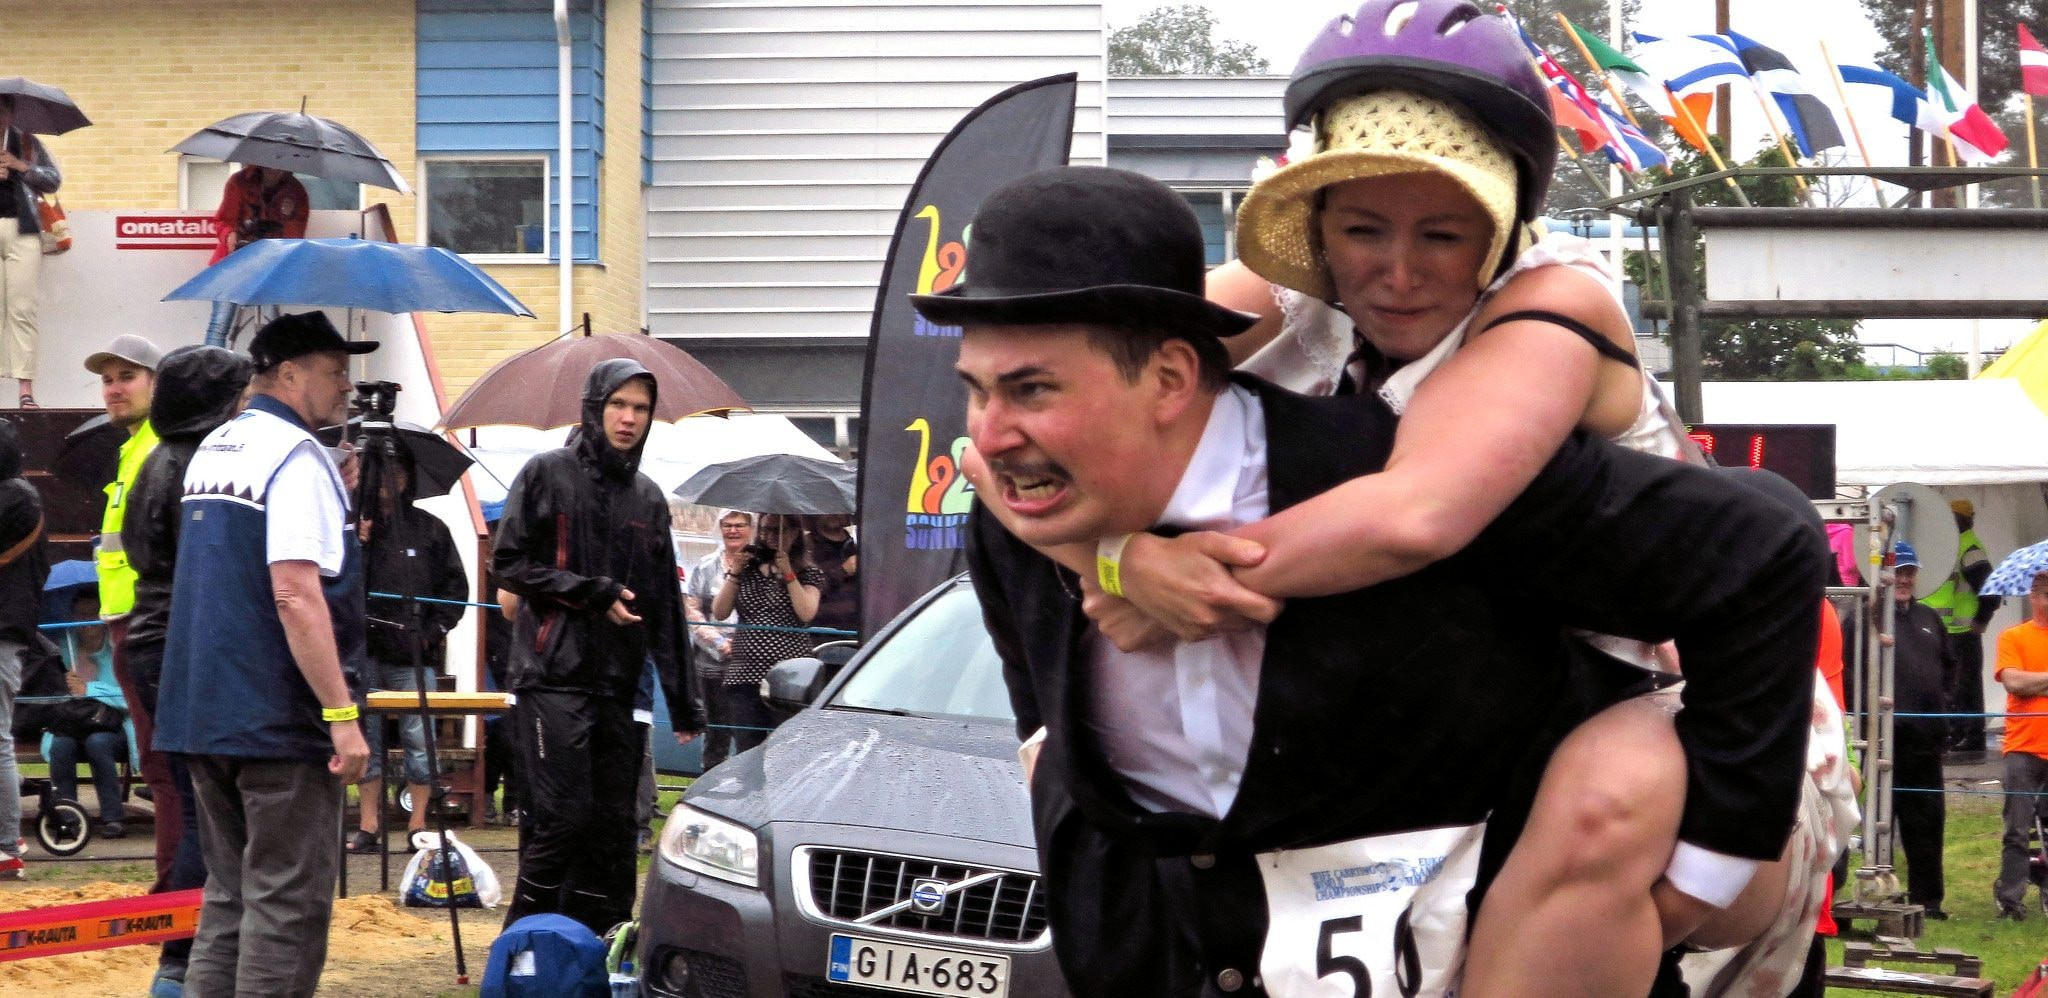 Why Does Finland Have So Many Wacky Sports Events?